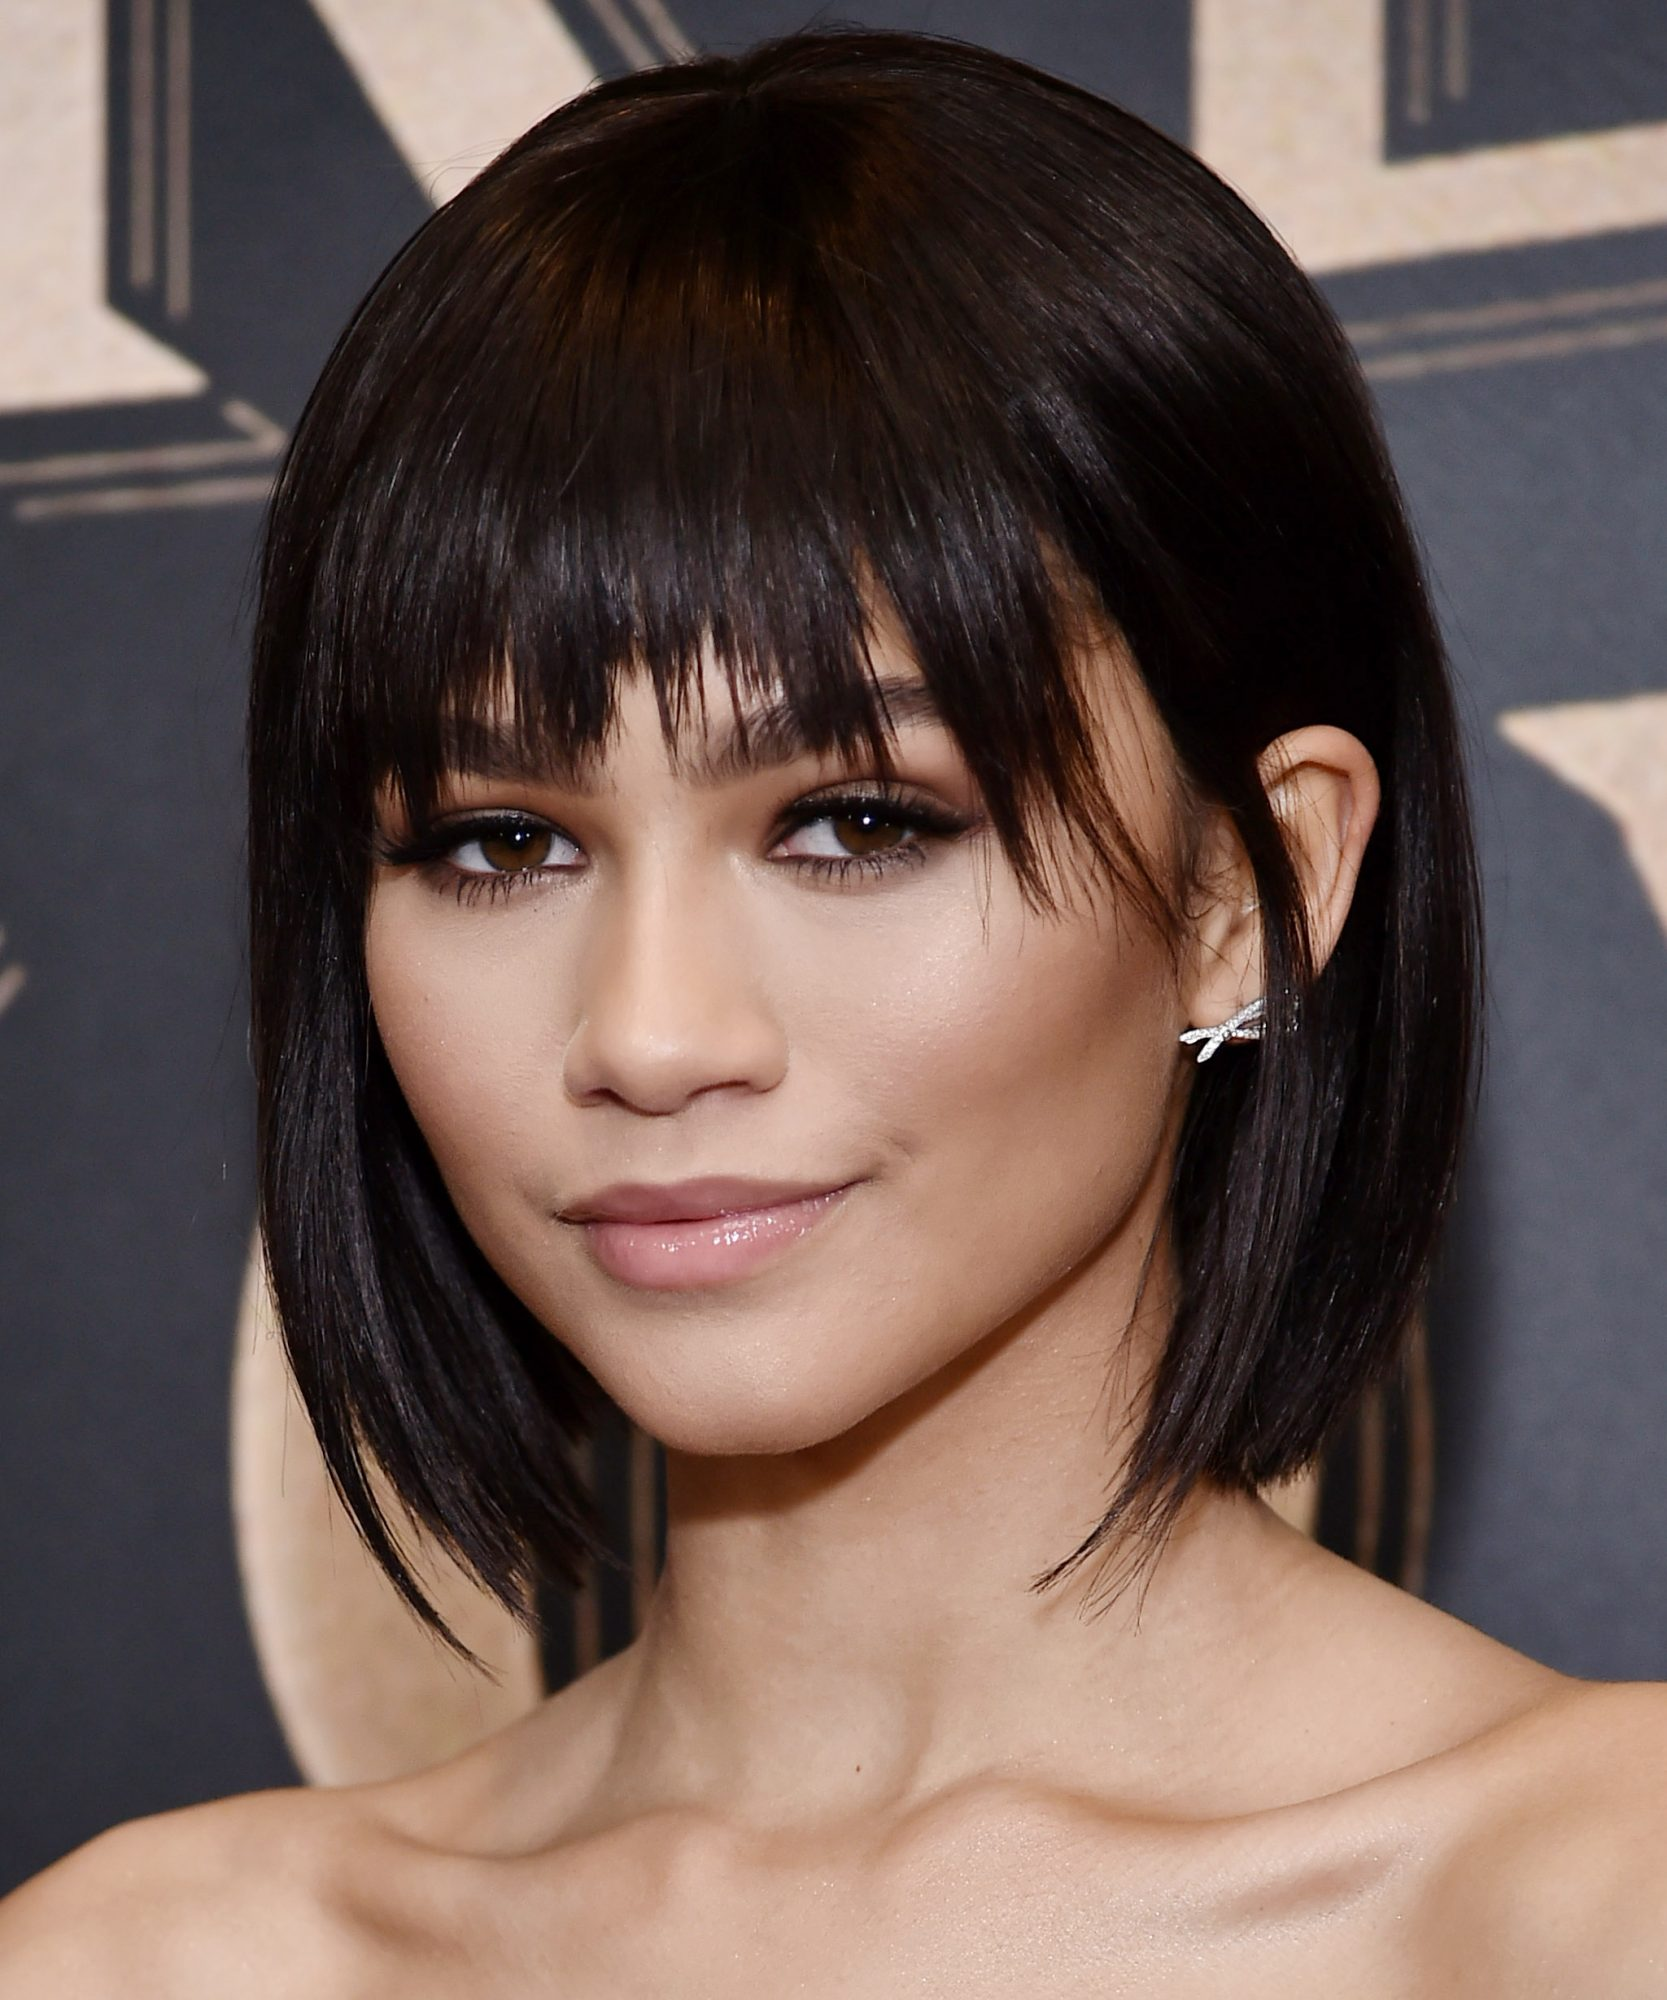 With bangs Short hair hairstyles